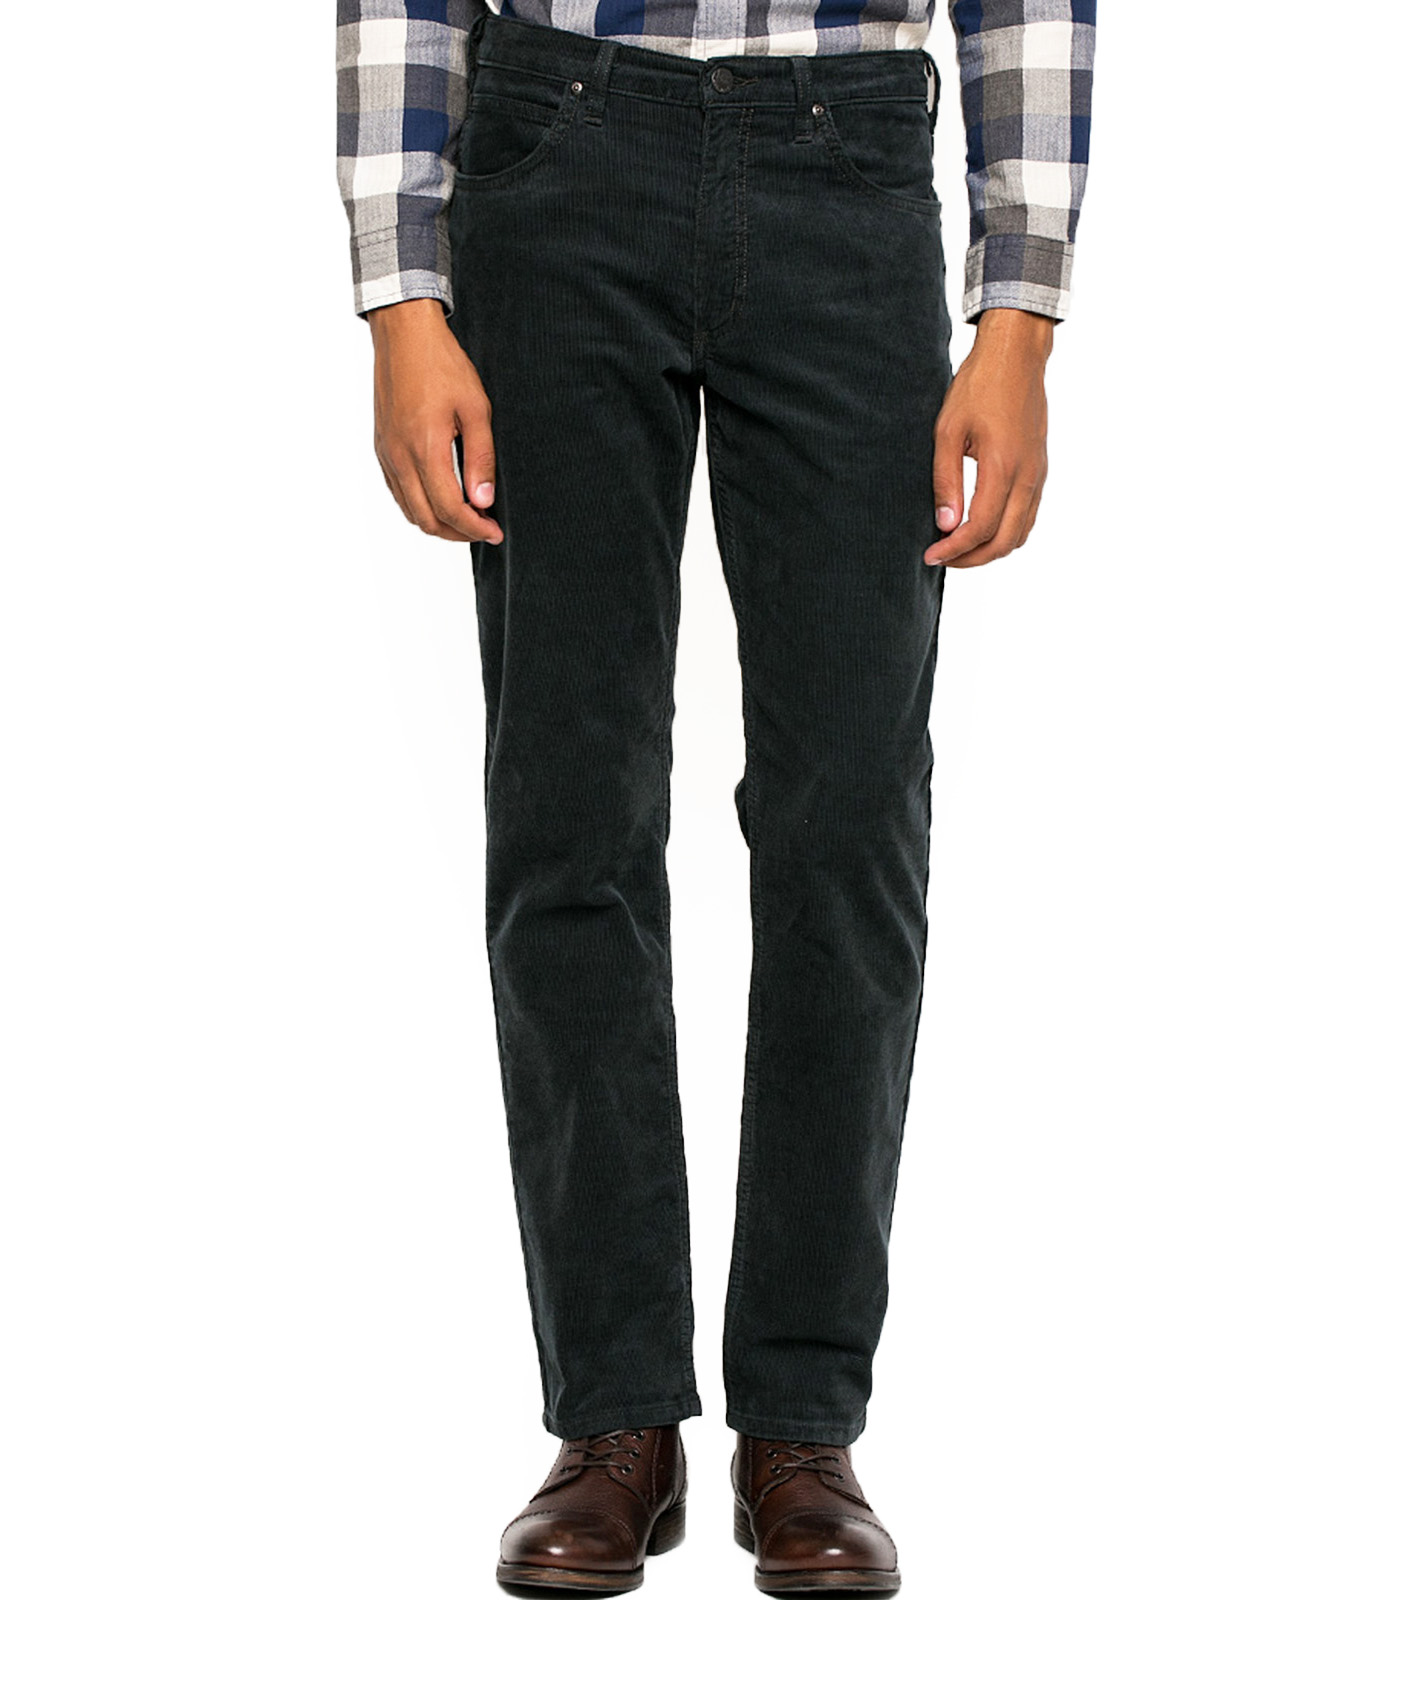 b06585d3 Click on the Image to Enlarge. More Details. Lee Brooklyn men's stretch  cords.